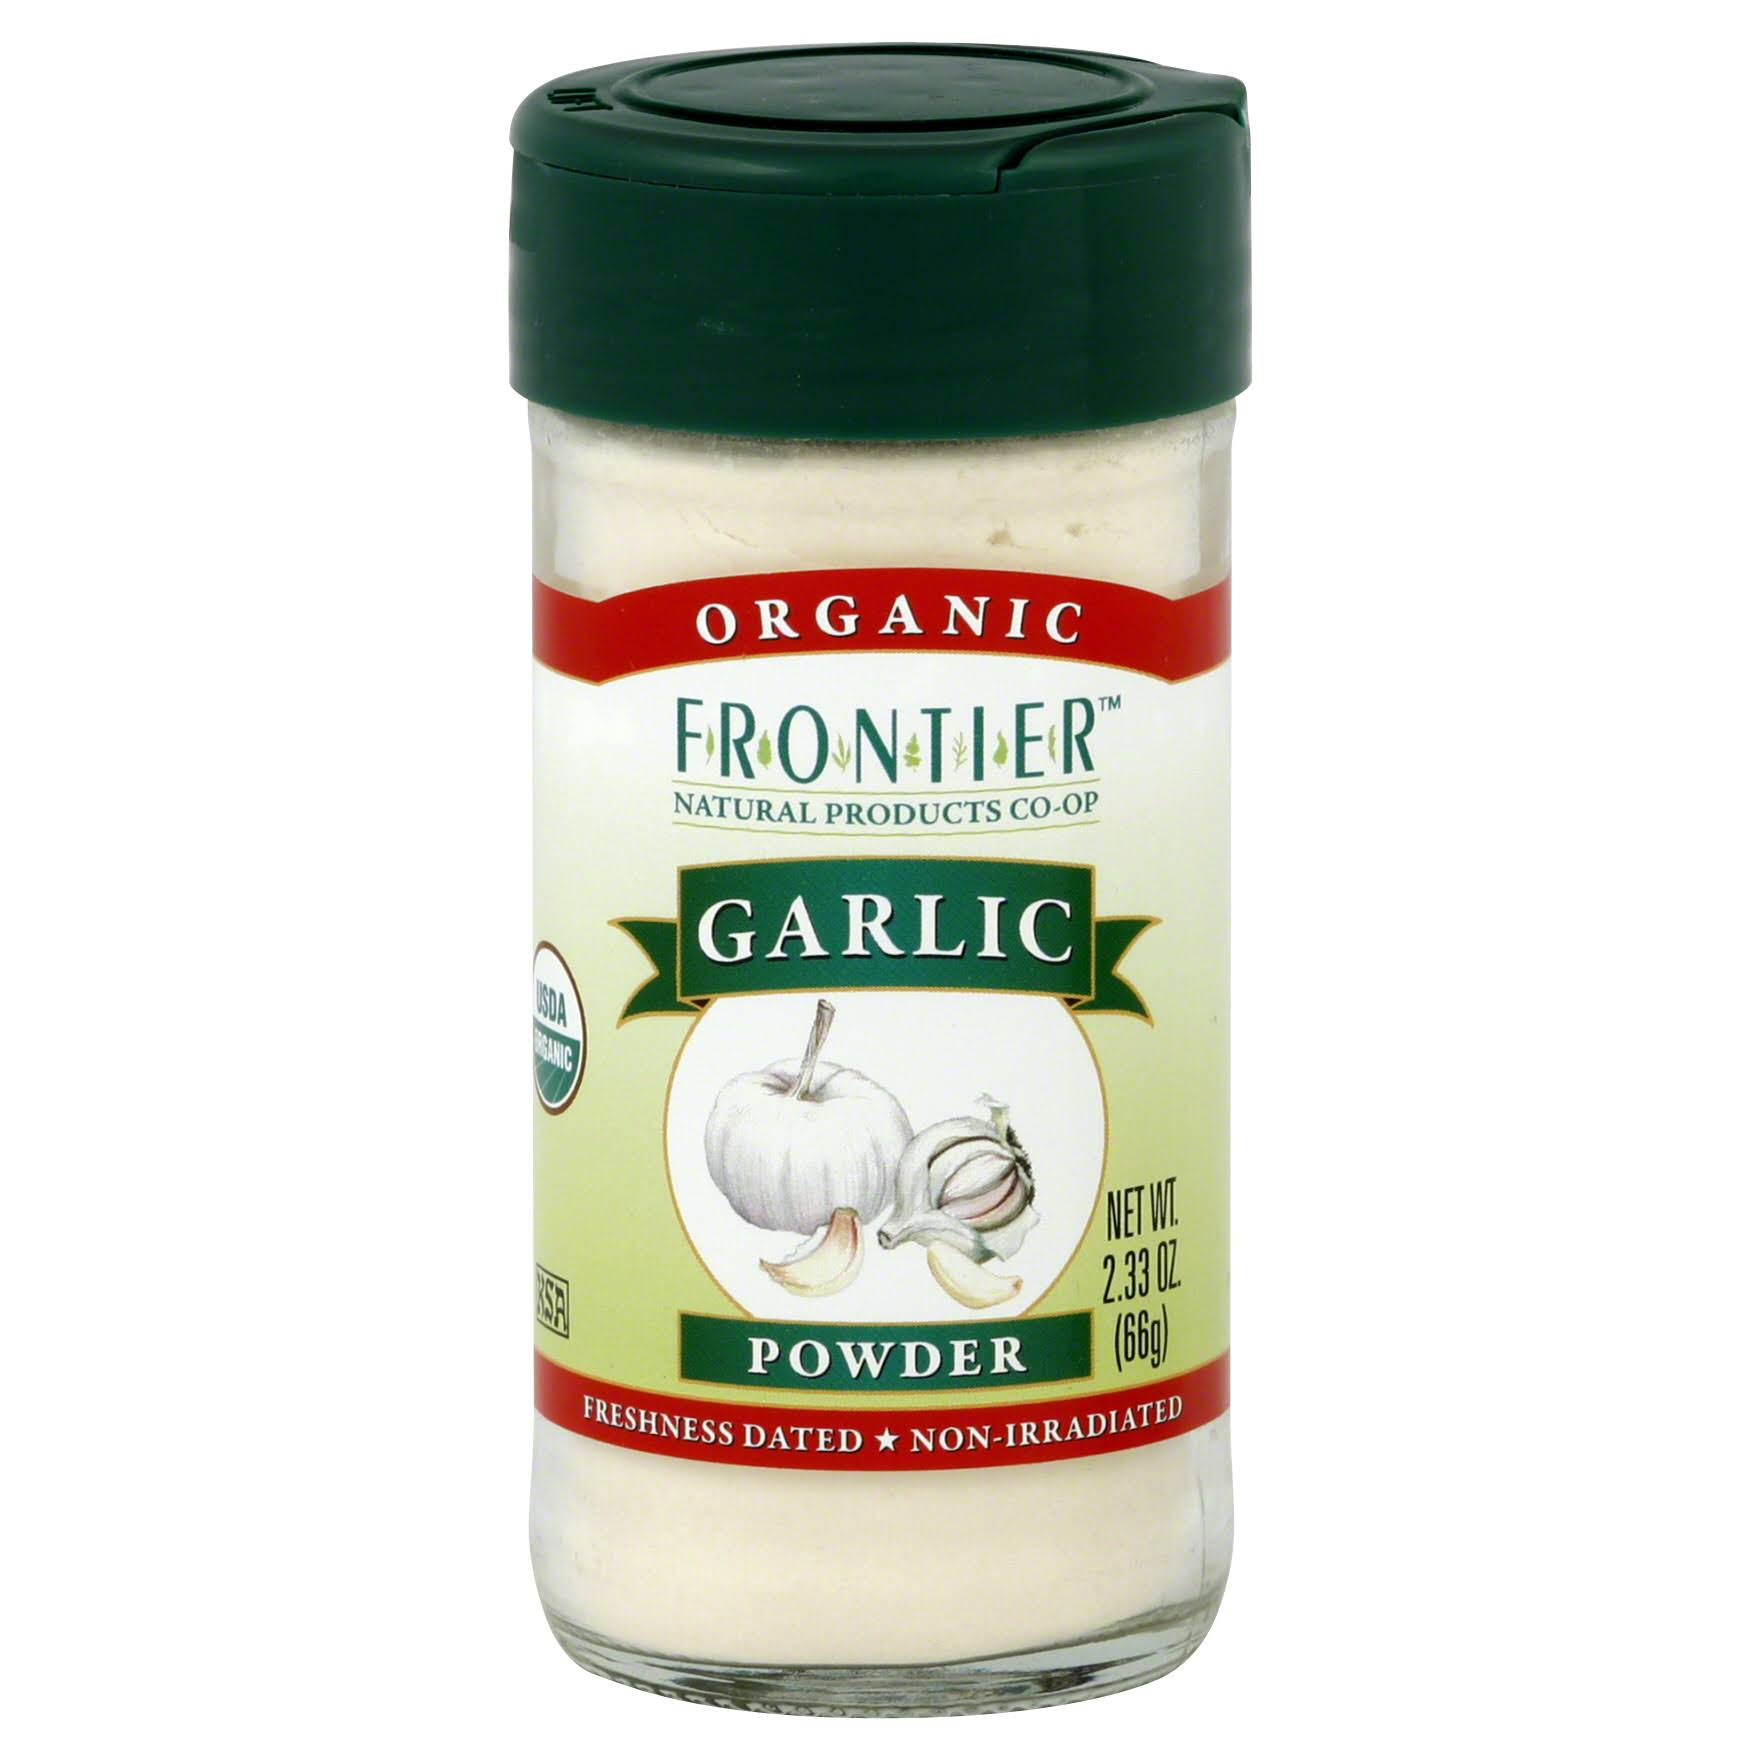 Frontier Organic Garlic Powder - 2.33oz